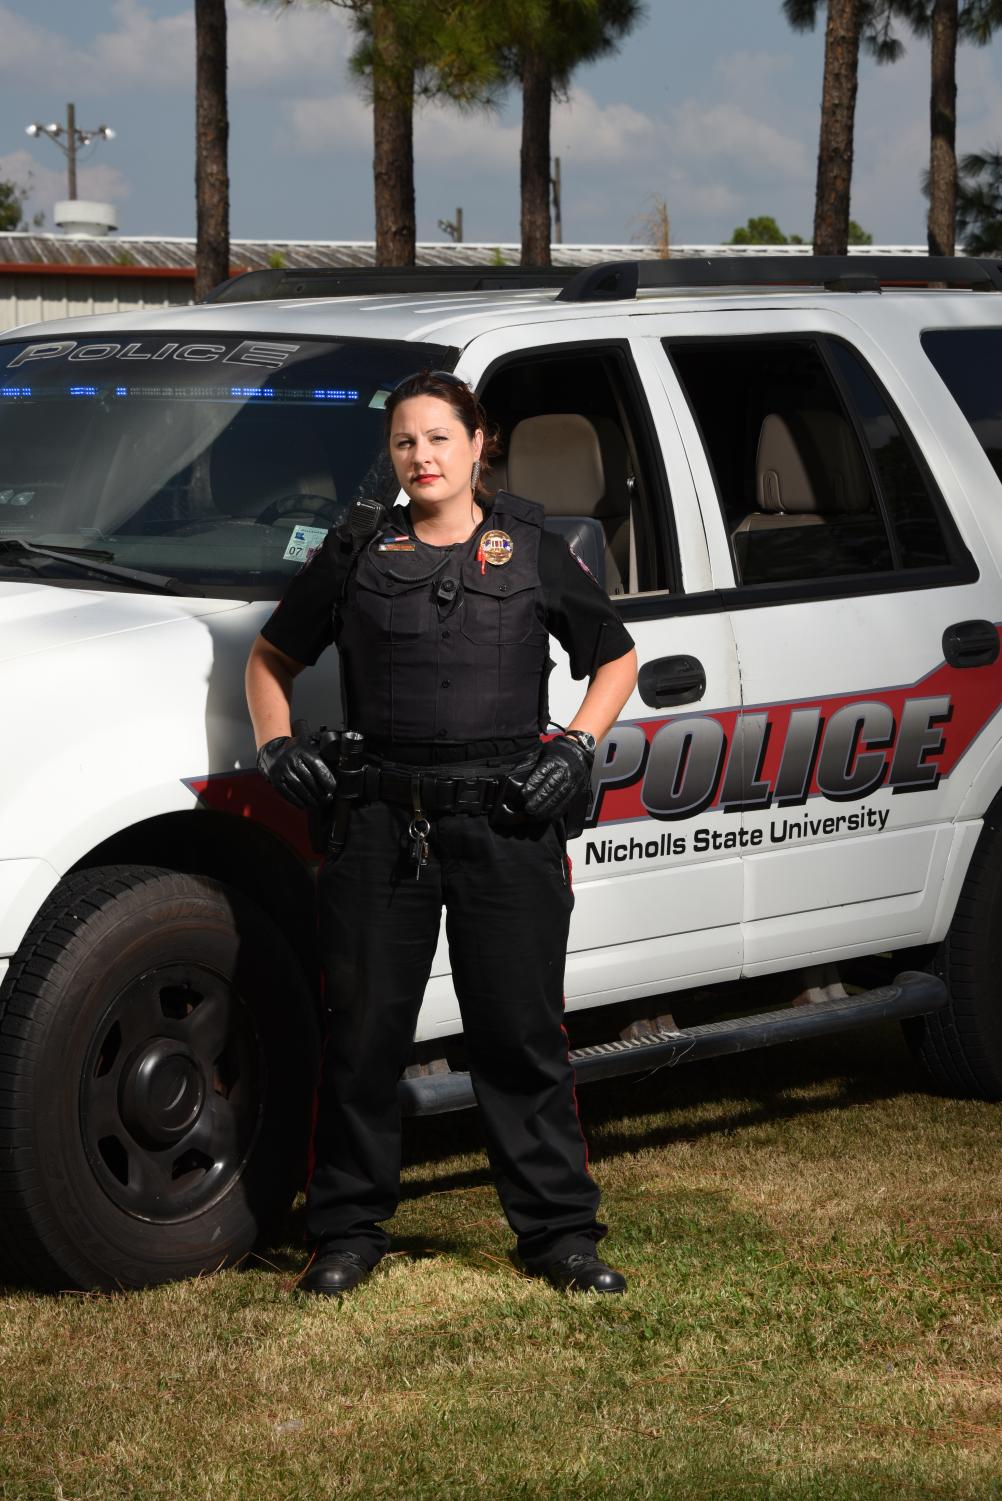 Pictured is Officer Melisa Quintal of Nicholls State University Police Department.